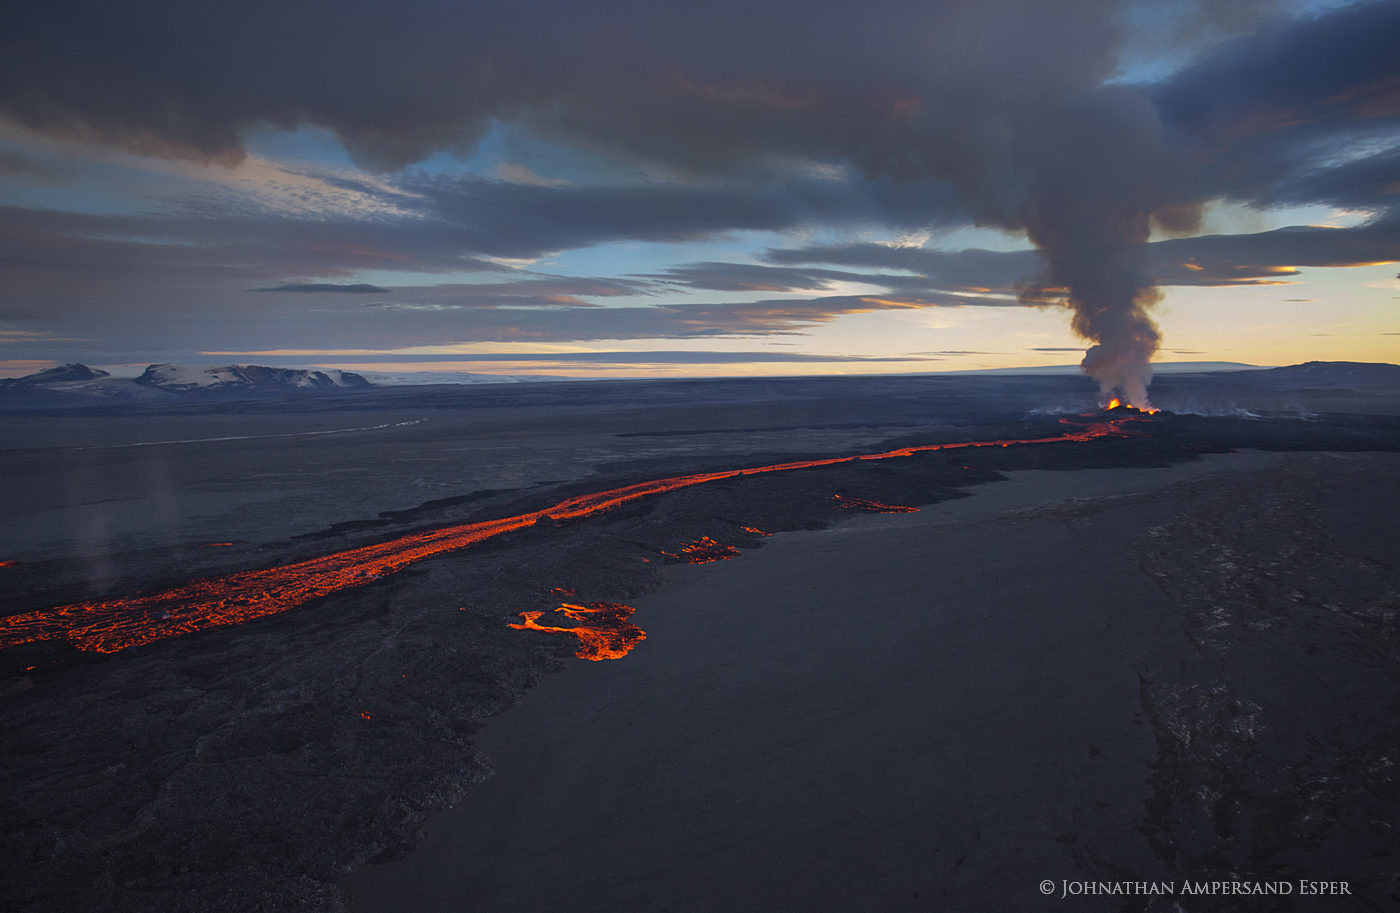 2014, Baugur, Bárðarbunga, Holuhraun, Iceland, Jökulsá á Fjöllum, Kverkfjöll, aerial, crater, erupting, eruption, flow, gas cloud, lava, sulfur dioxide, toxic gases, photo